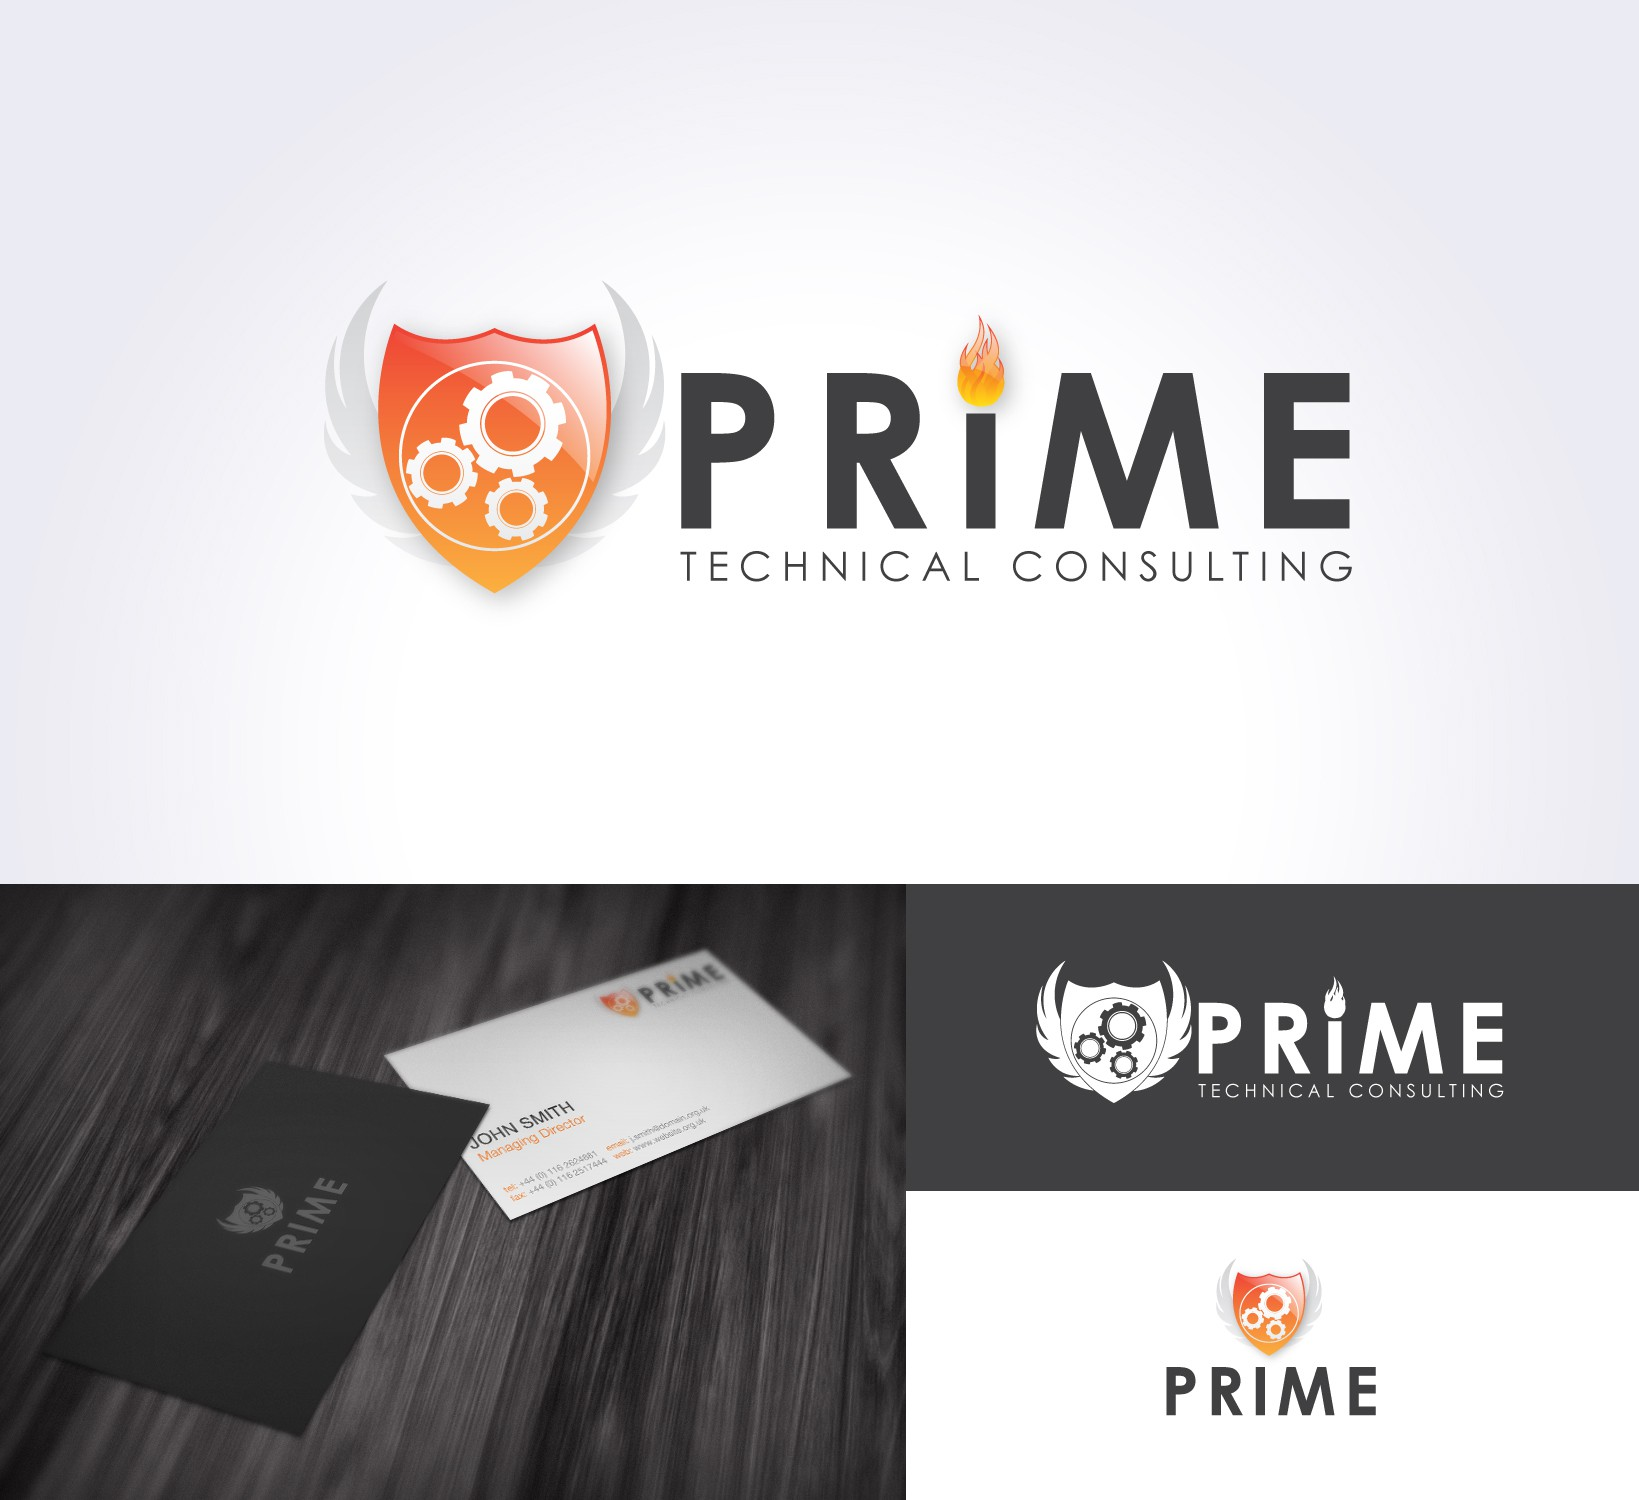 Prime Technical Consulting - Logo Needed! - Blind Contest